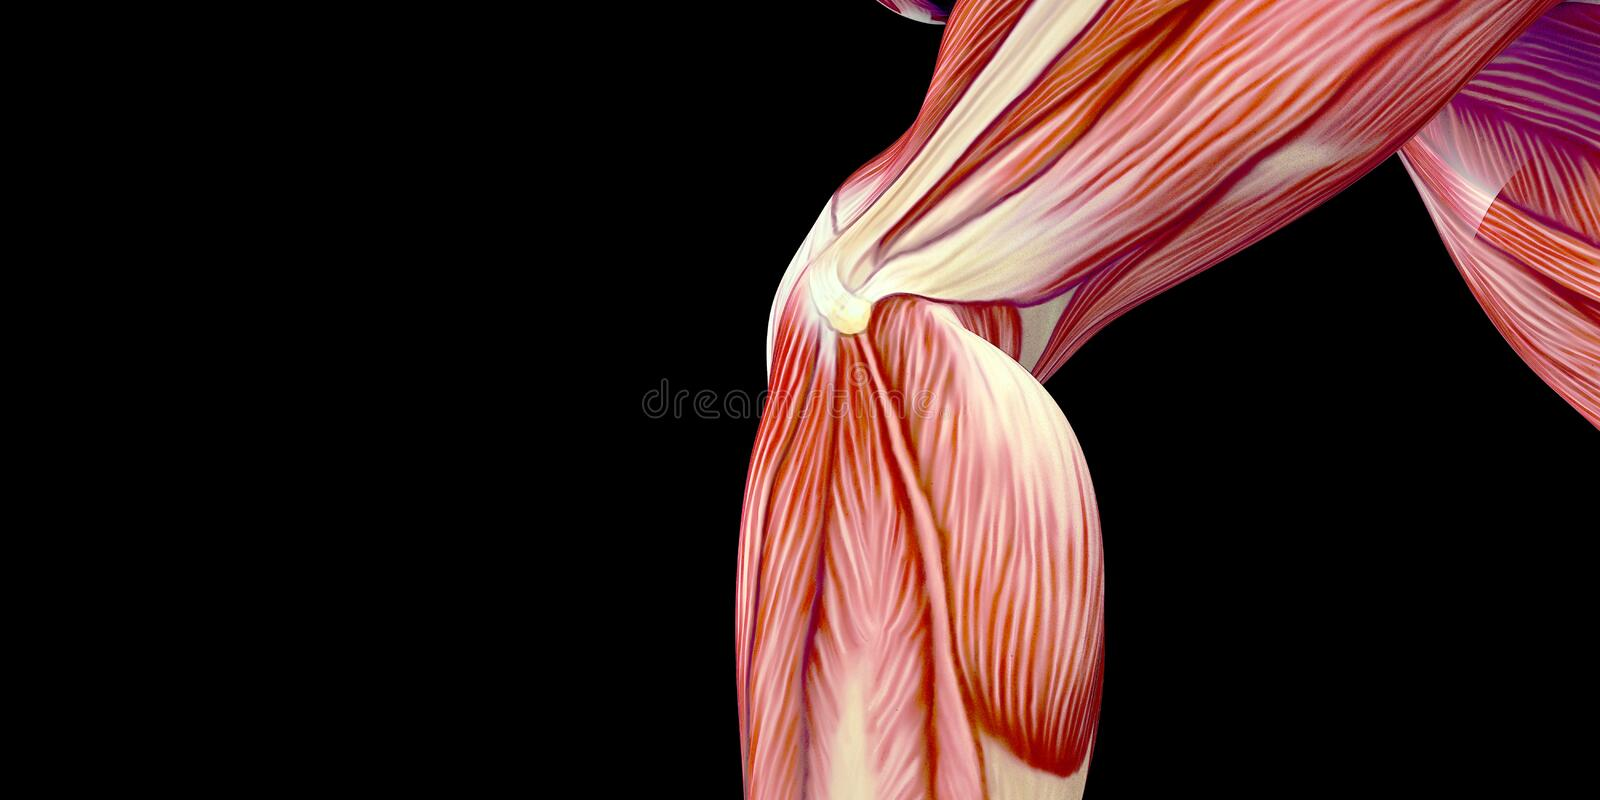 Human Male Body Anatomy Illustration Of The Human Knee Joint With